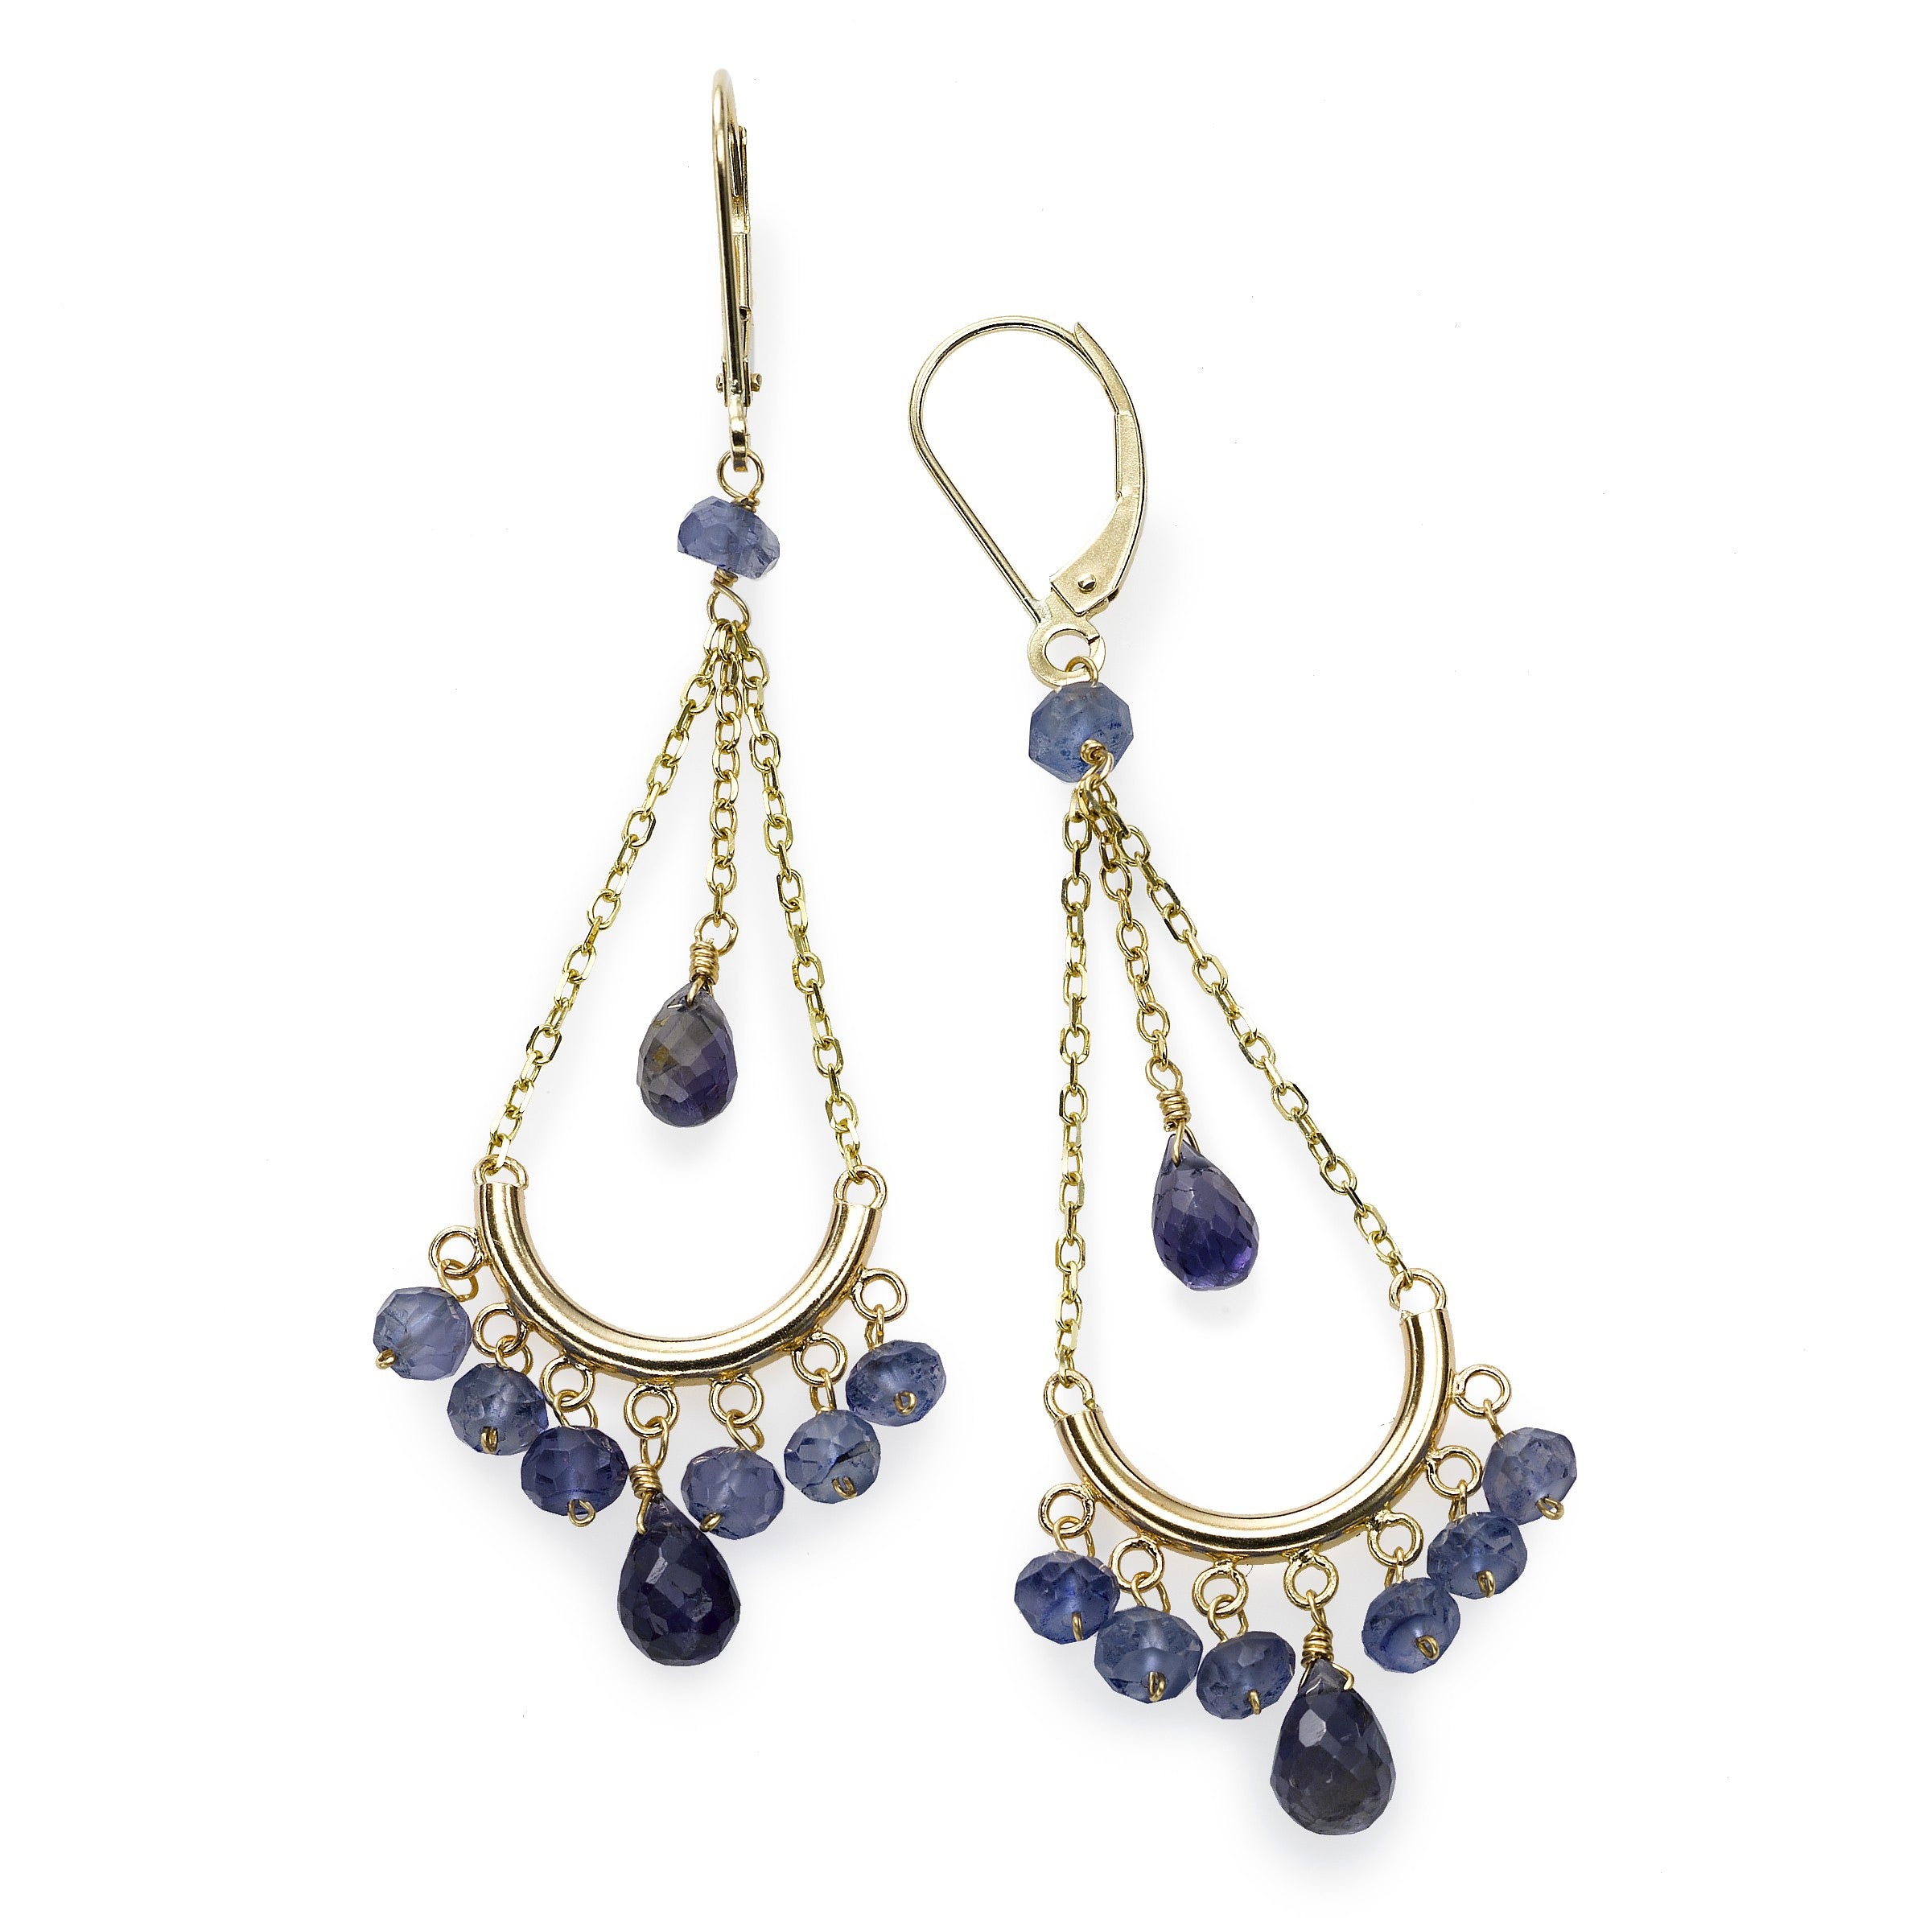 Blue Iolite Chandelier Earrings, 14K Yellow Gold